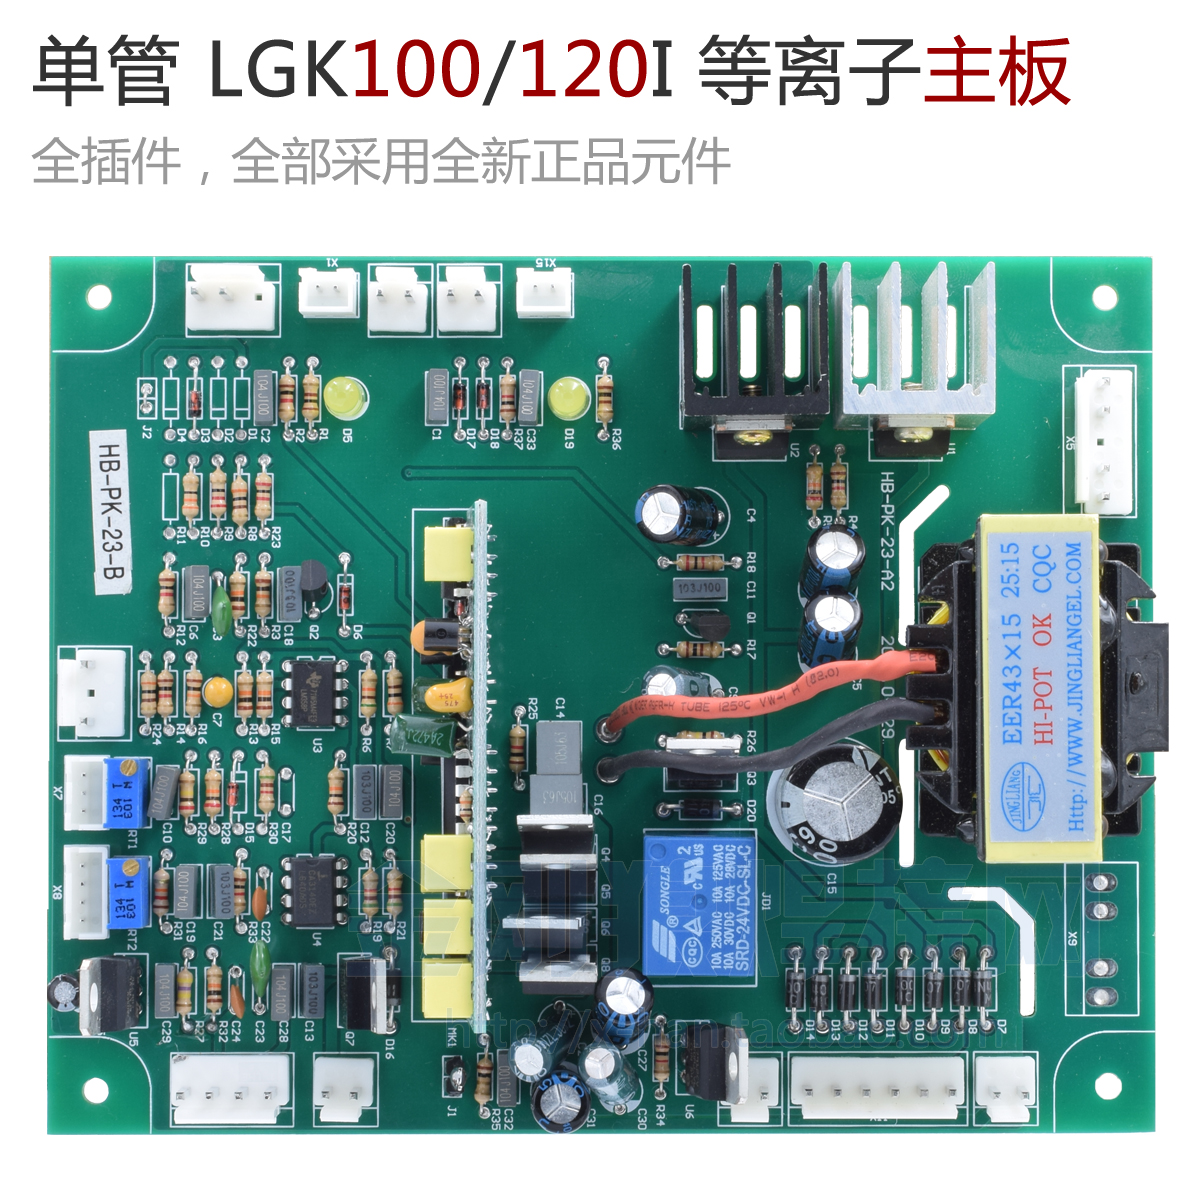 LGK II 80A 200A Cutting machine boards set with IGBT control (Panel ...